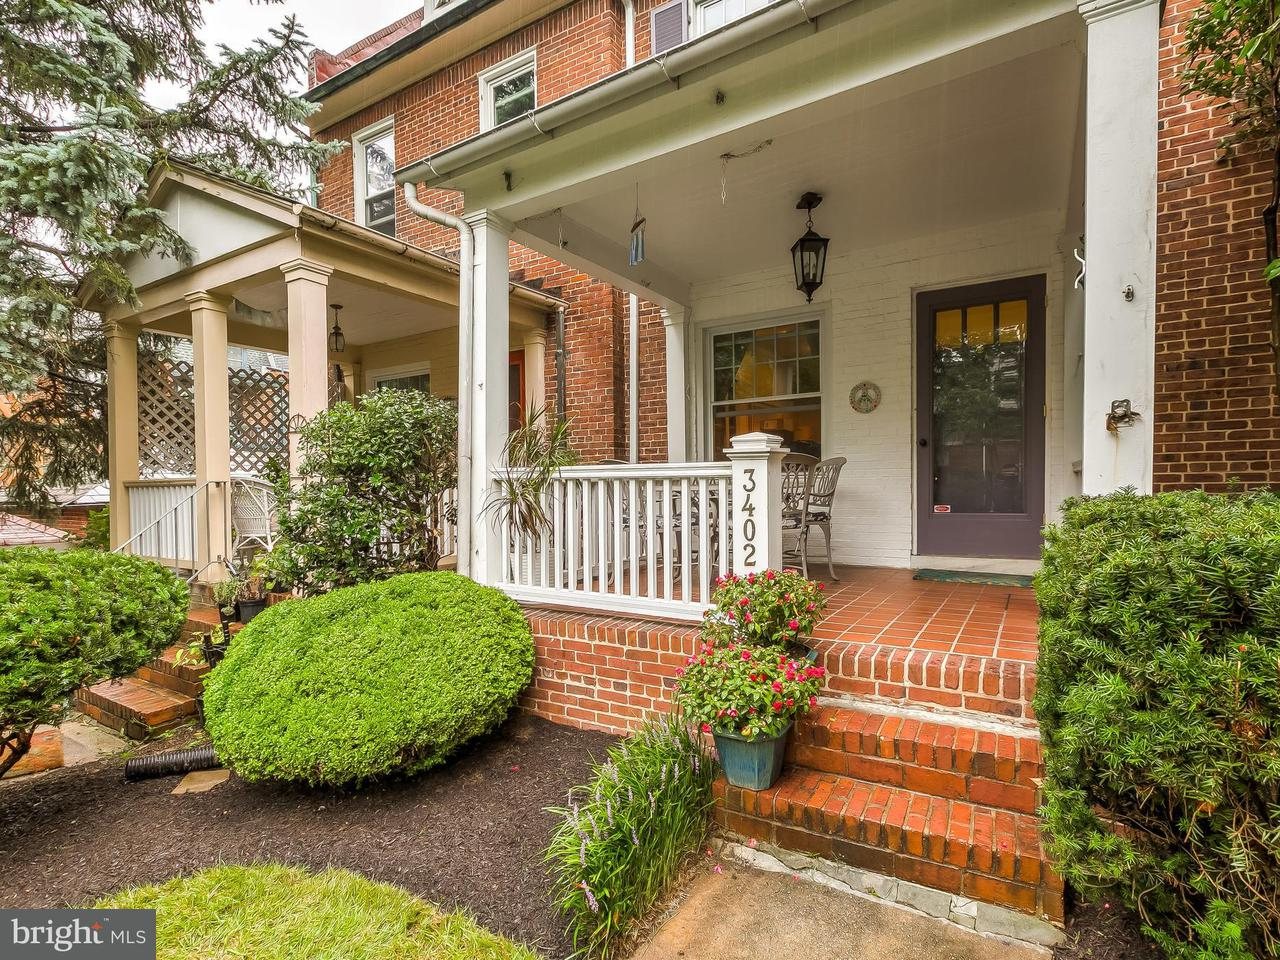 Other Residential for Rent at 3402 University Pl Baltimore, Maryland 21218 United States